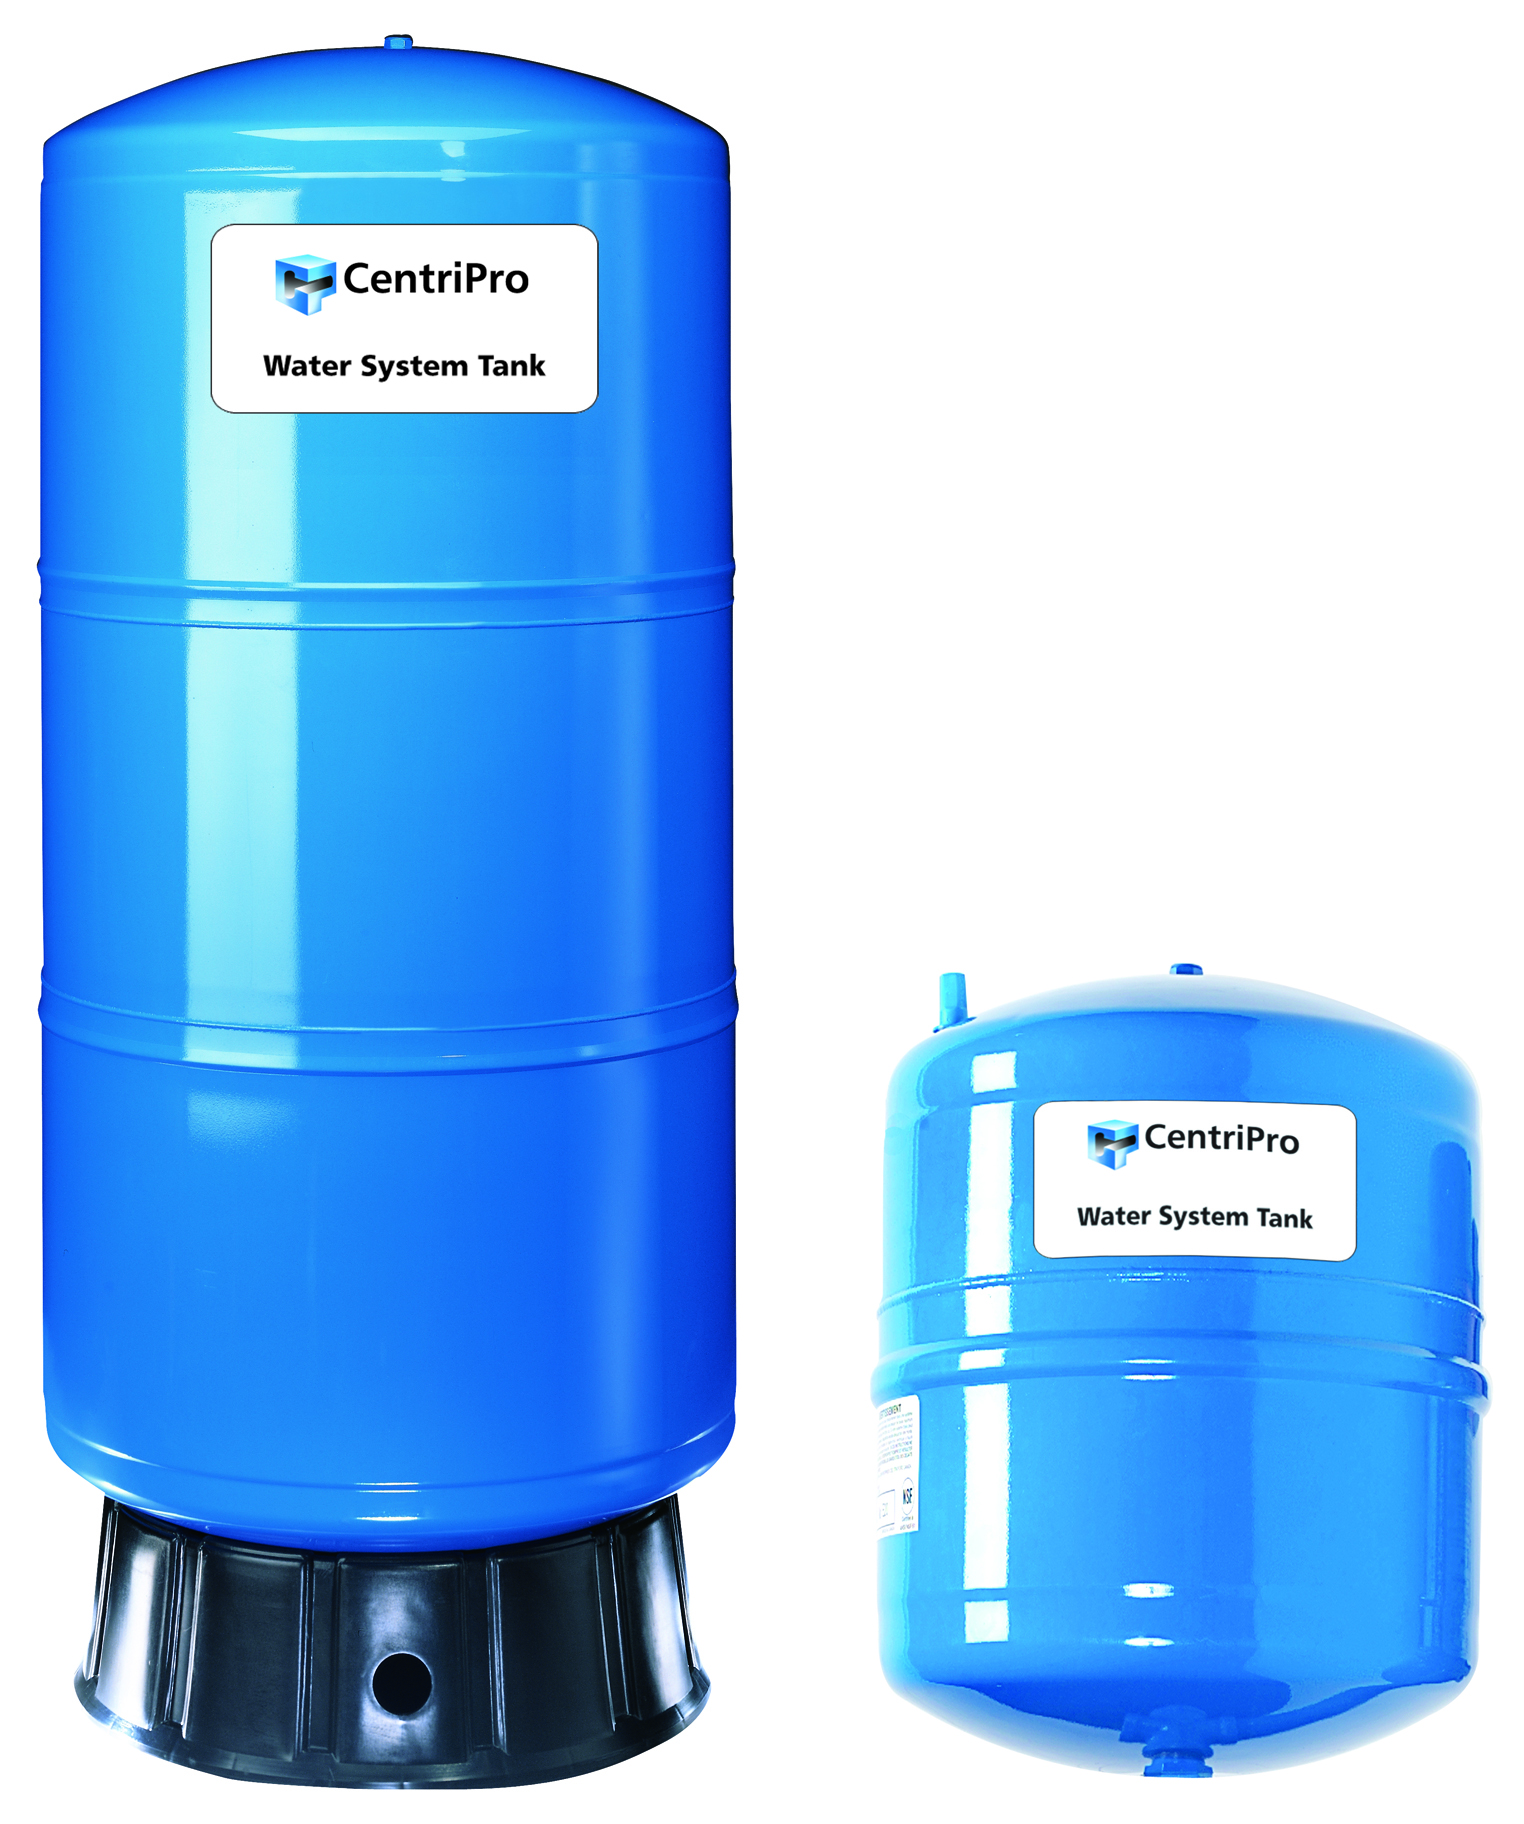 T Series Epoxy Coated Diaphragm Tanks